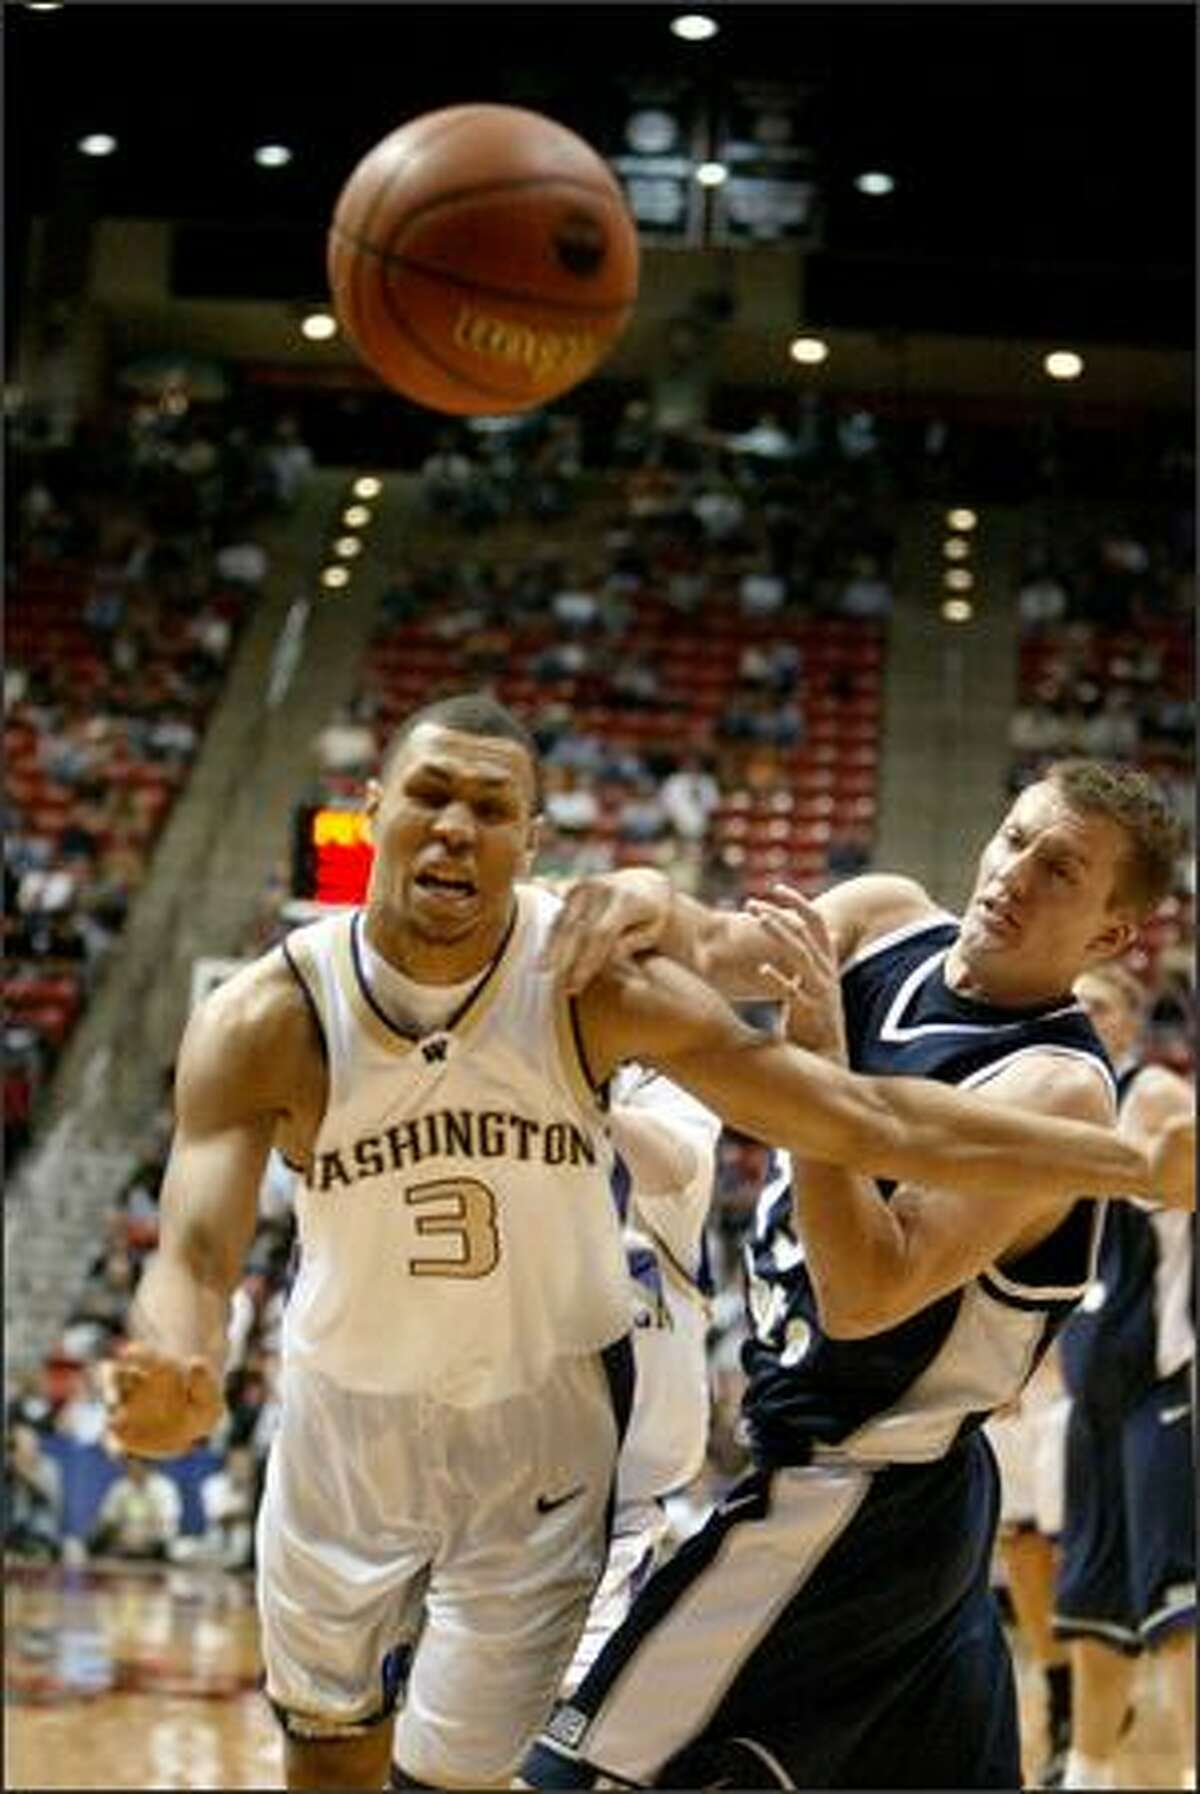 Utah State's Chris Huber grabs a piece of Washington's Brandon Roy, left, as the two schools faced off in the NCAA Tournament. Washington won 75-61.